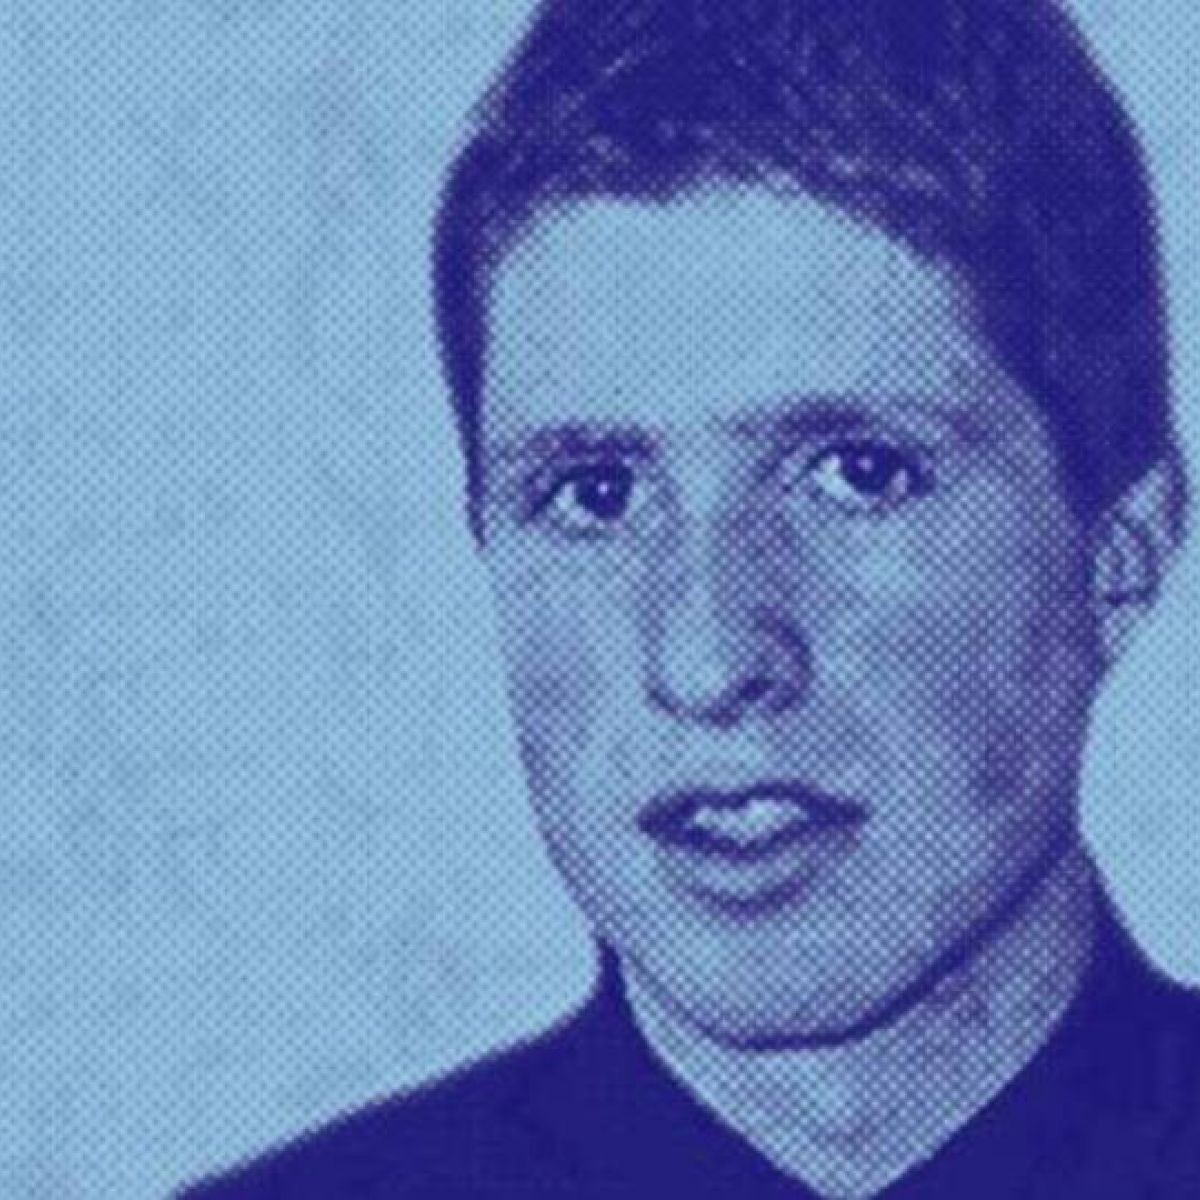 The disappearance of Trevor Deely, part 1